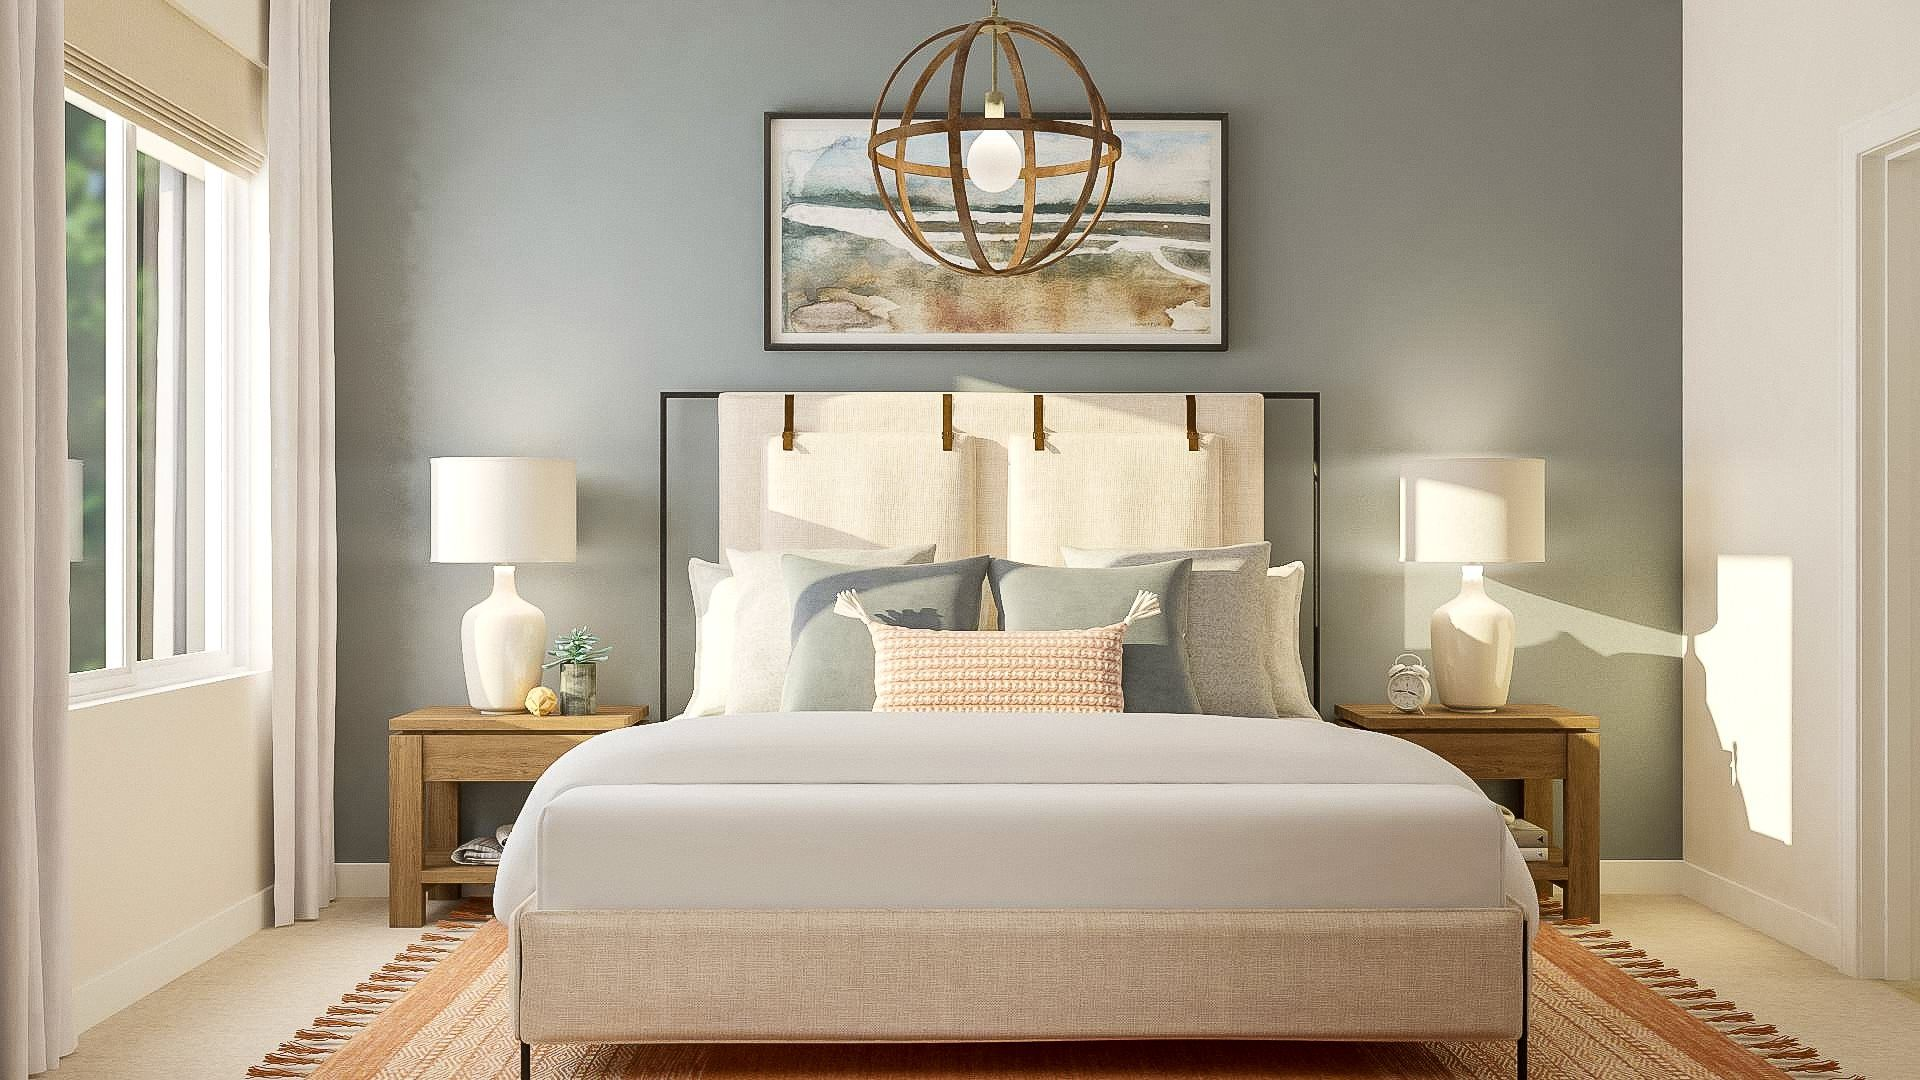 Bedroom featured in the Alia 2 By Lennar in Orange County, CA